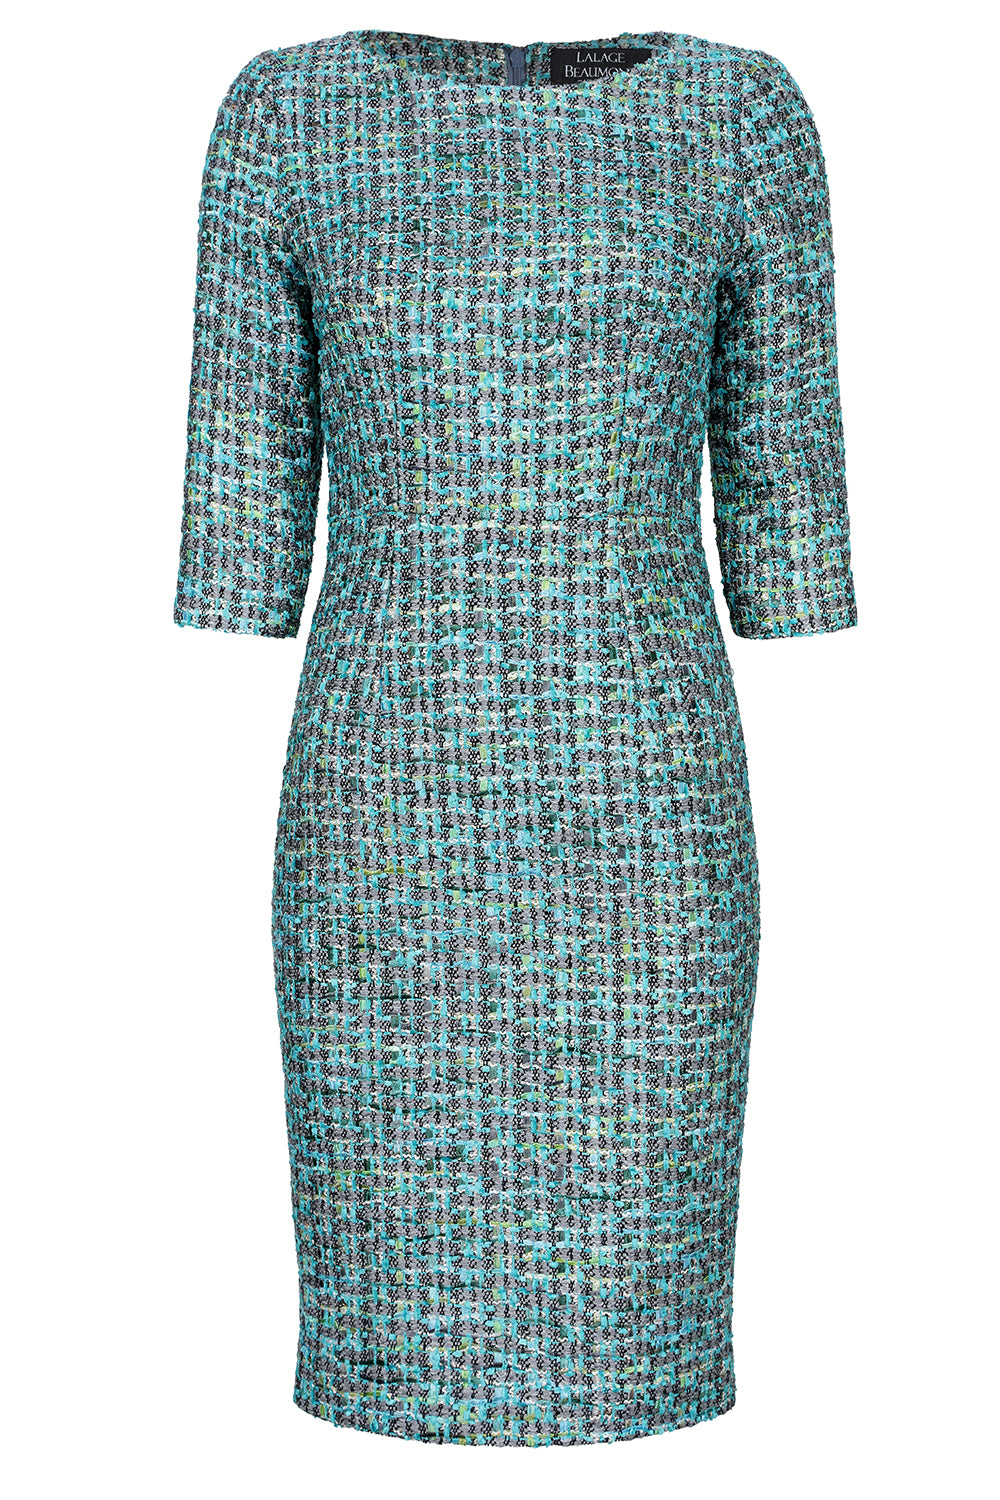 376de0444d4 Turquoise tweed mother of the bride outfit dress